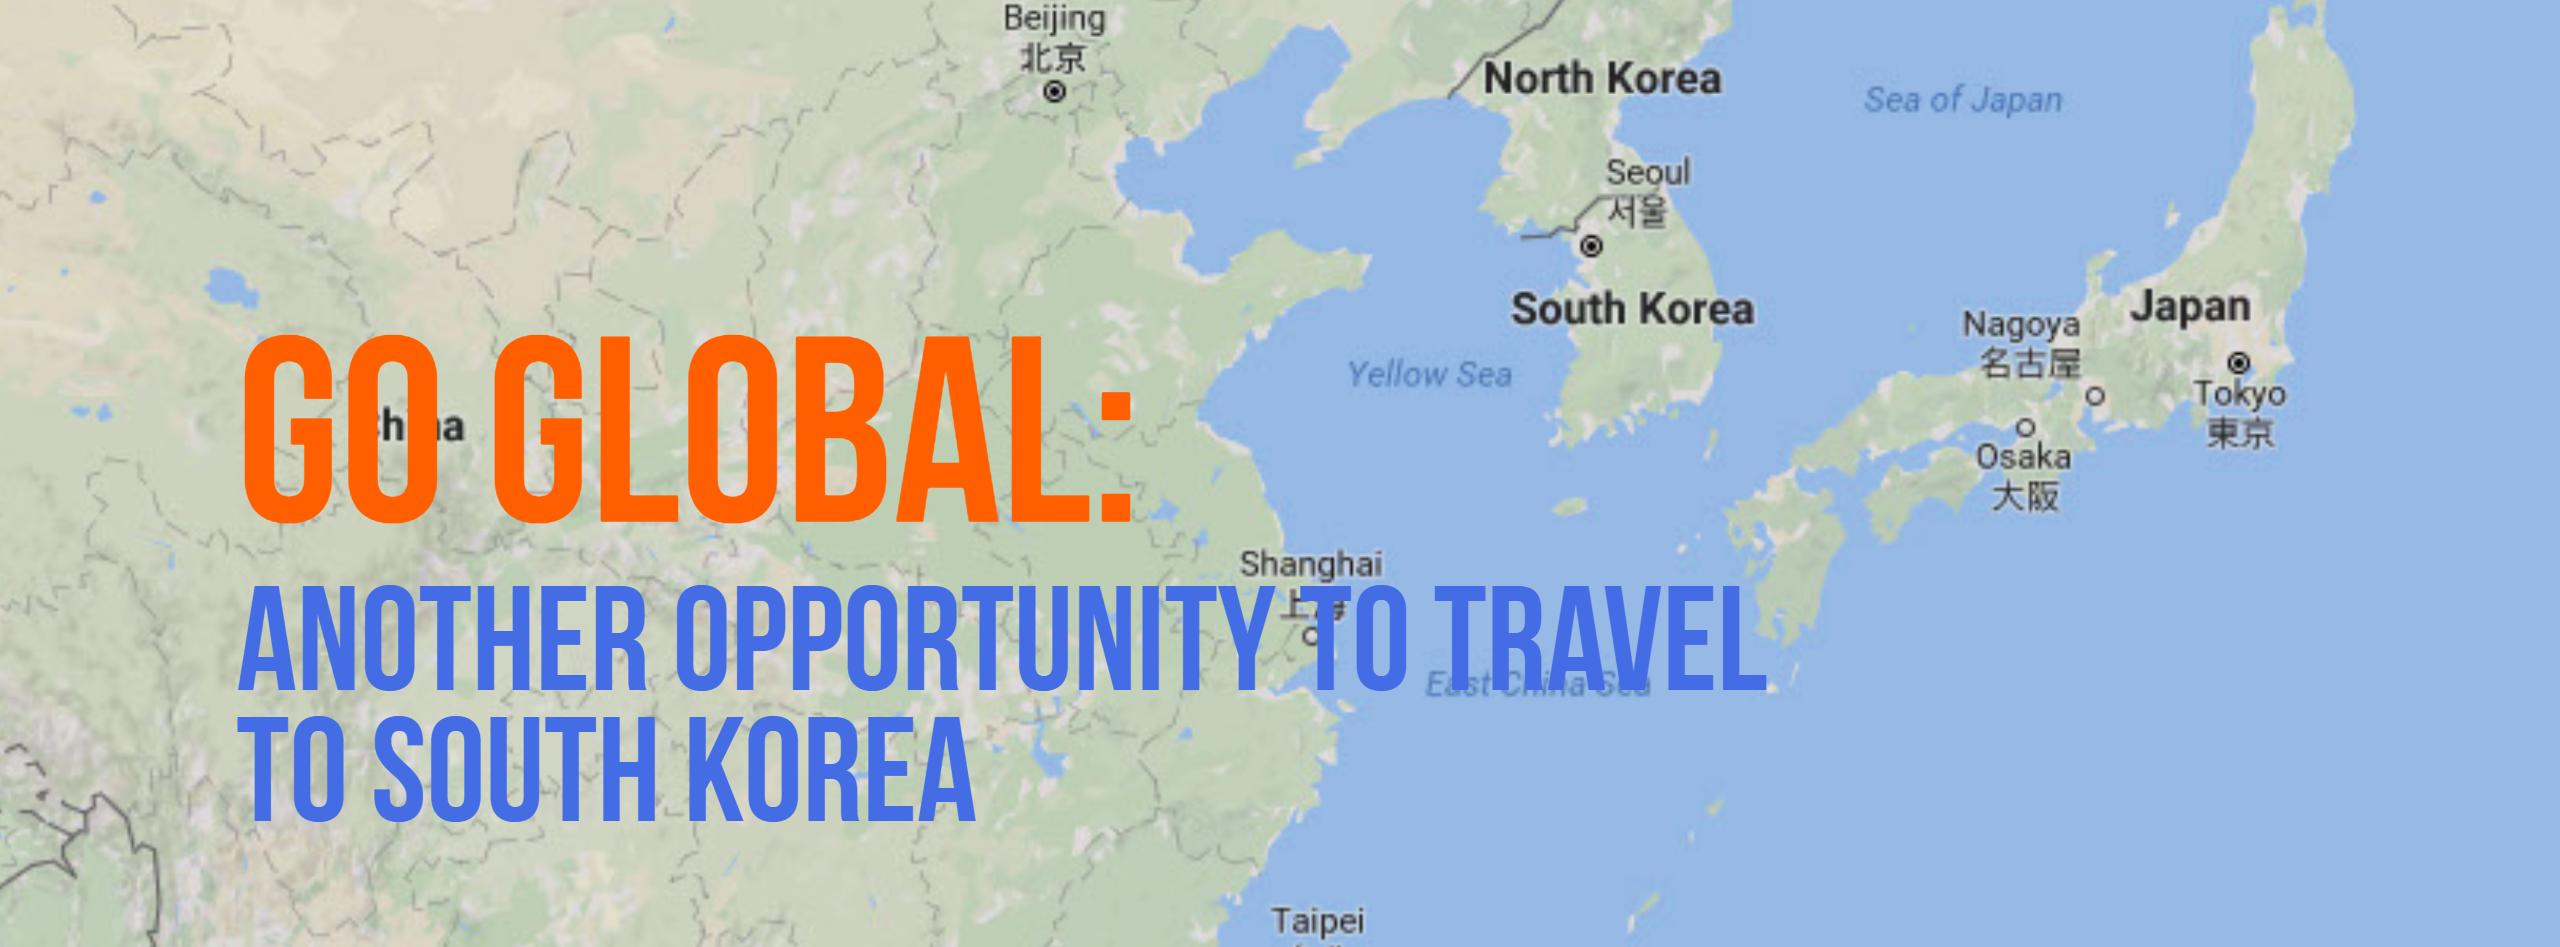 Go Global another opportunity to travel to South Korea